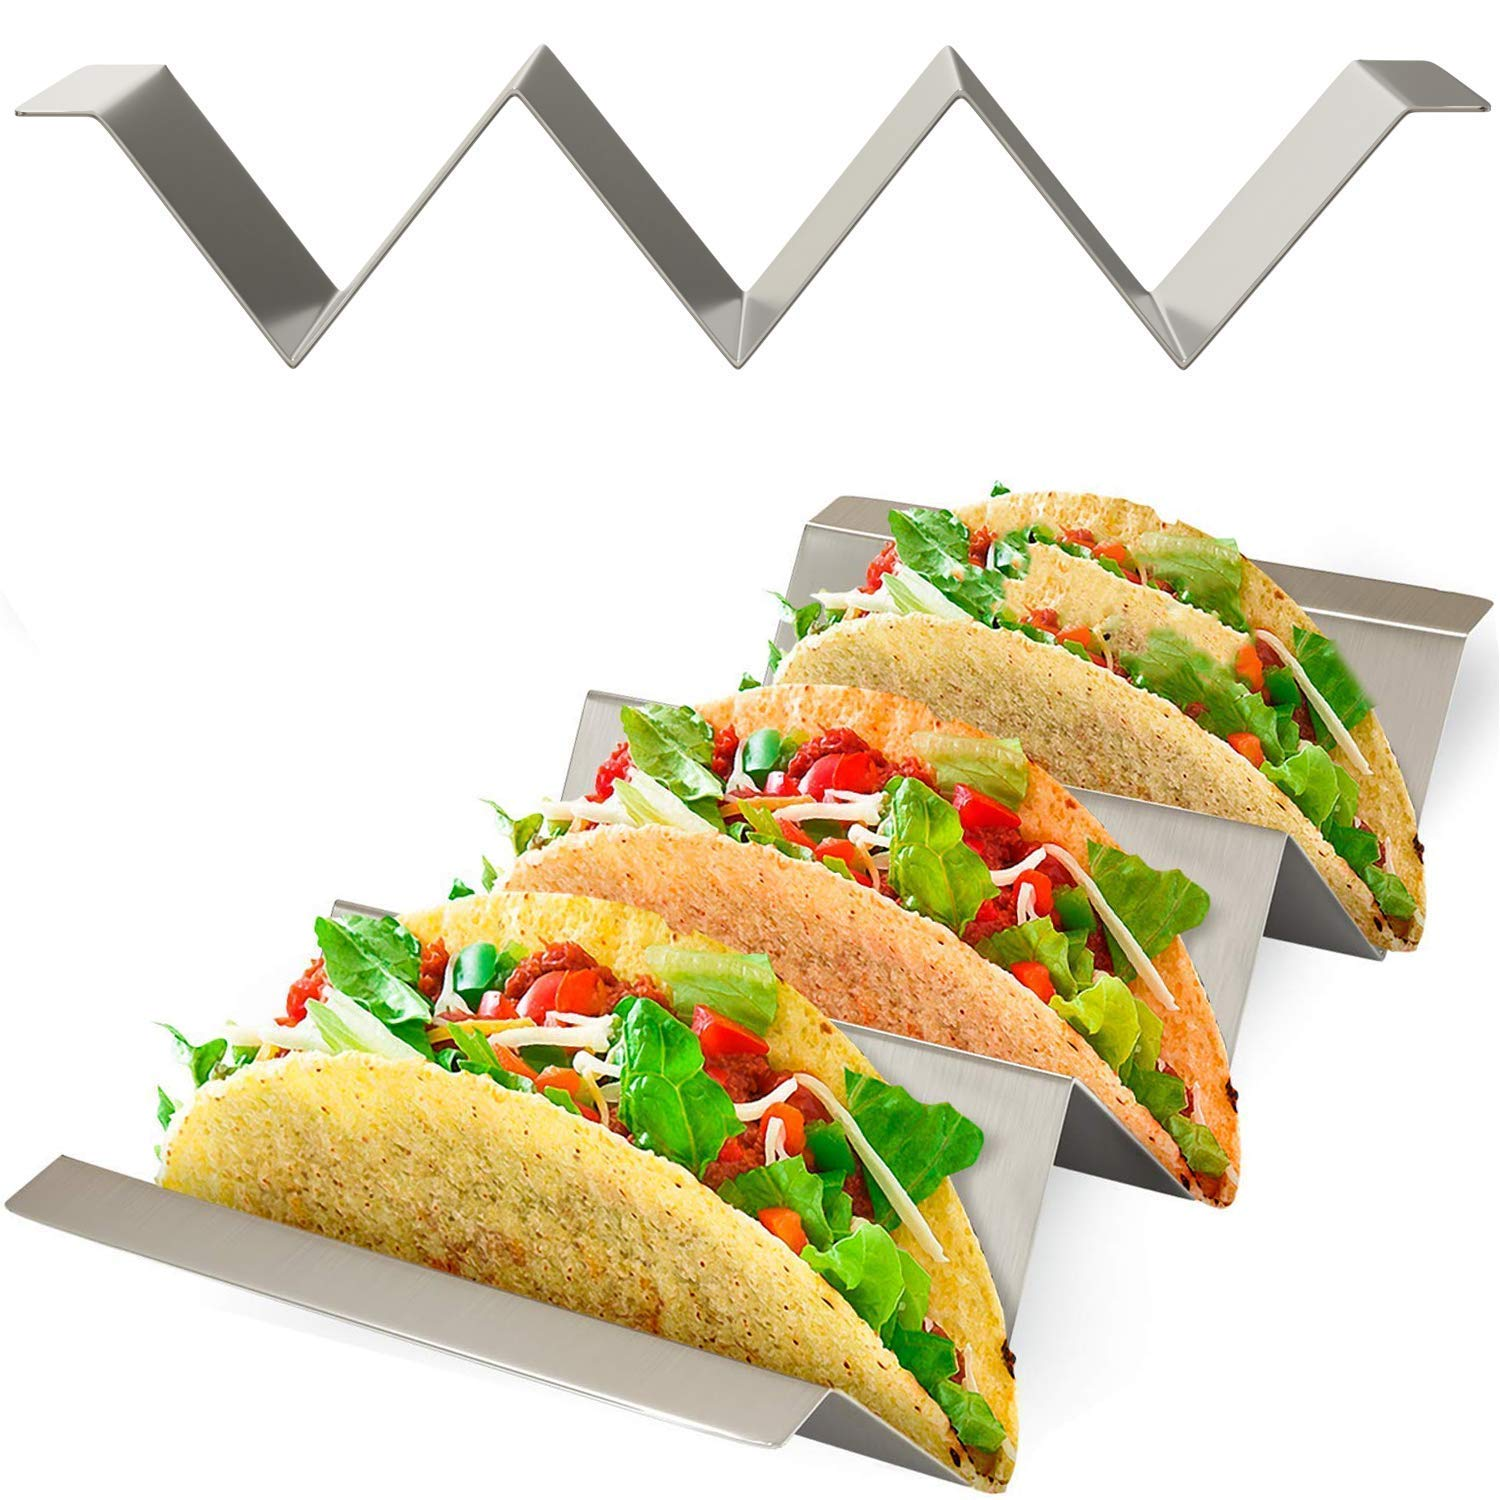 SNNY NEW Taco Holder Stand with Easy Carry Handles 4 Pack Stainless Steel Racks for Taco Shell, Tortilla, Burrito, Fajita